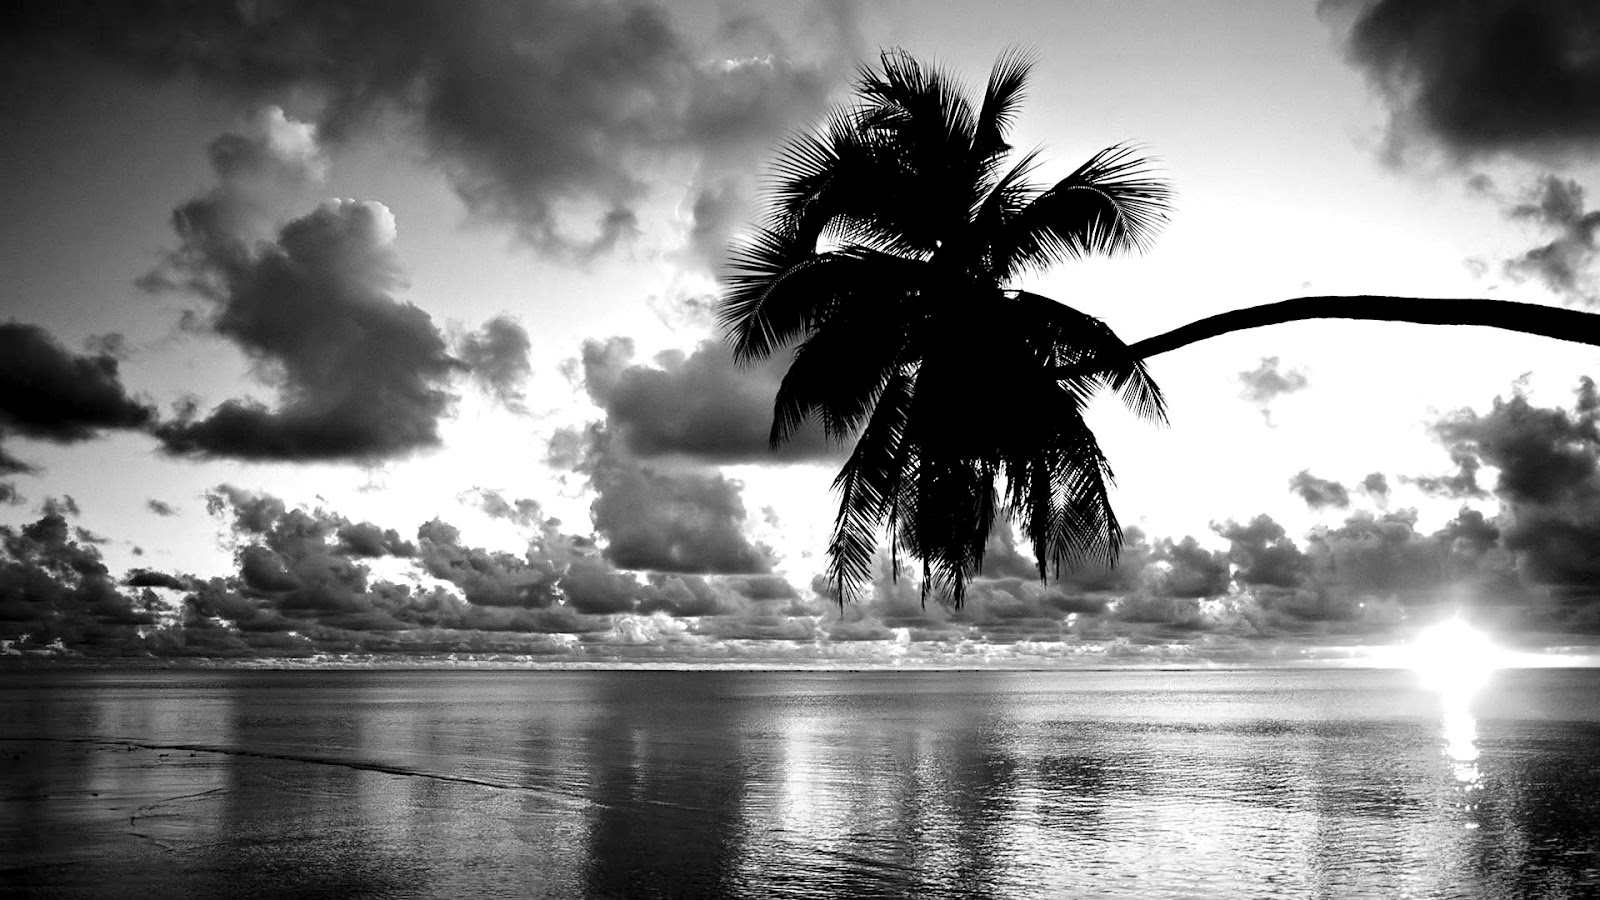 Beautiful Black And White Wallpapers Backgrounds, Images 1600x900